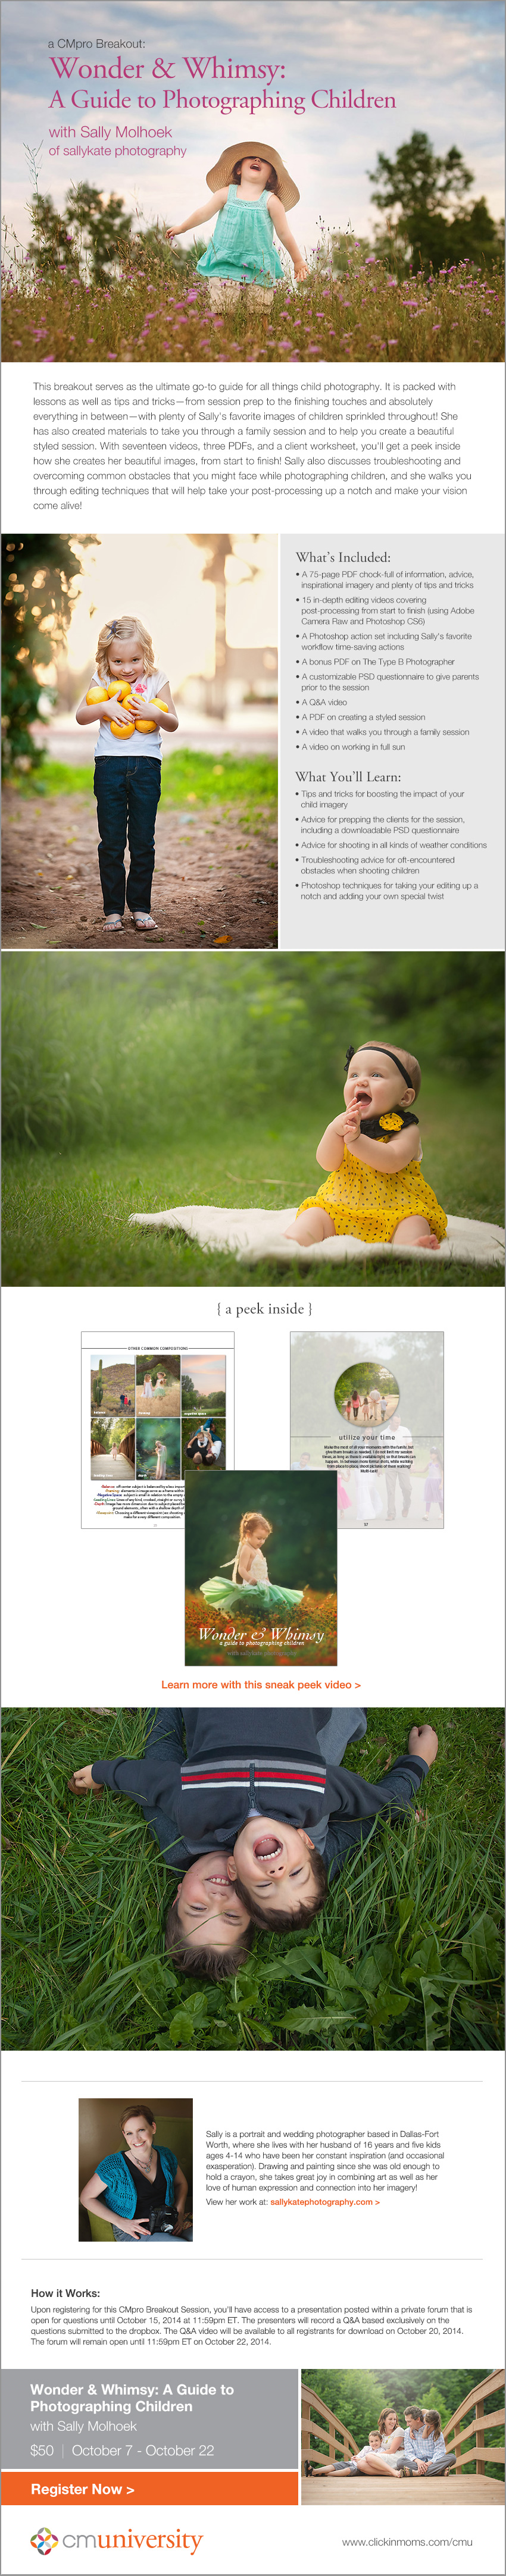 Wonder & Whimsy: A Guide to Photographing Children